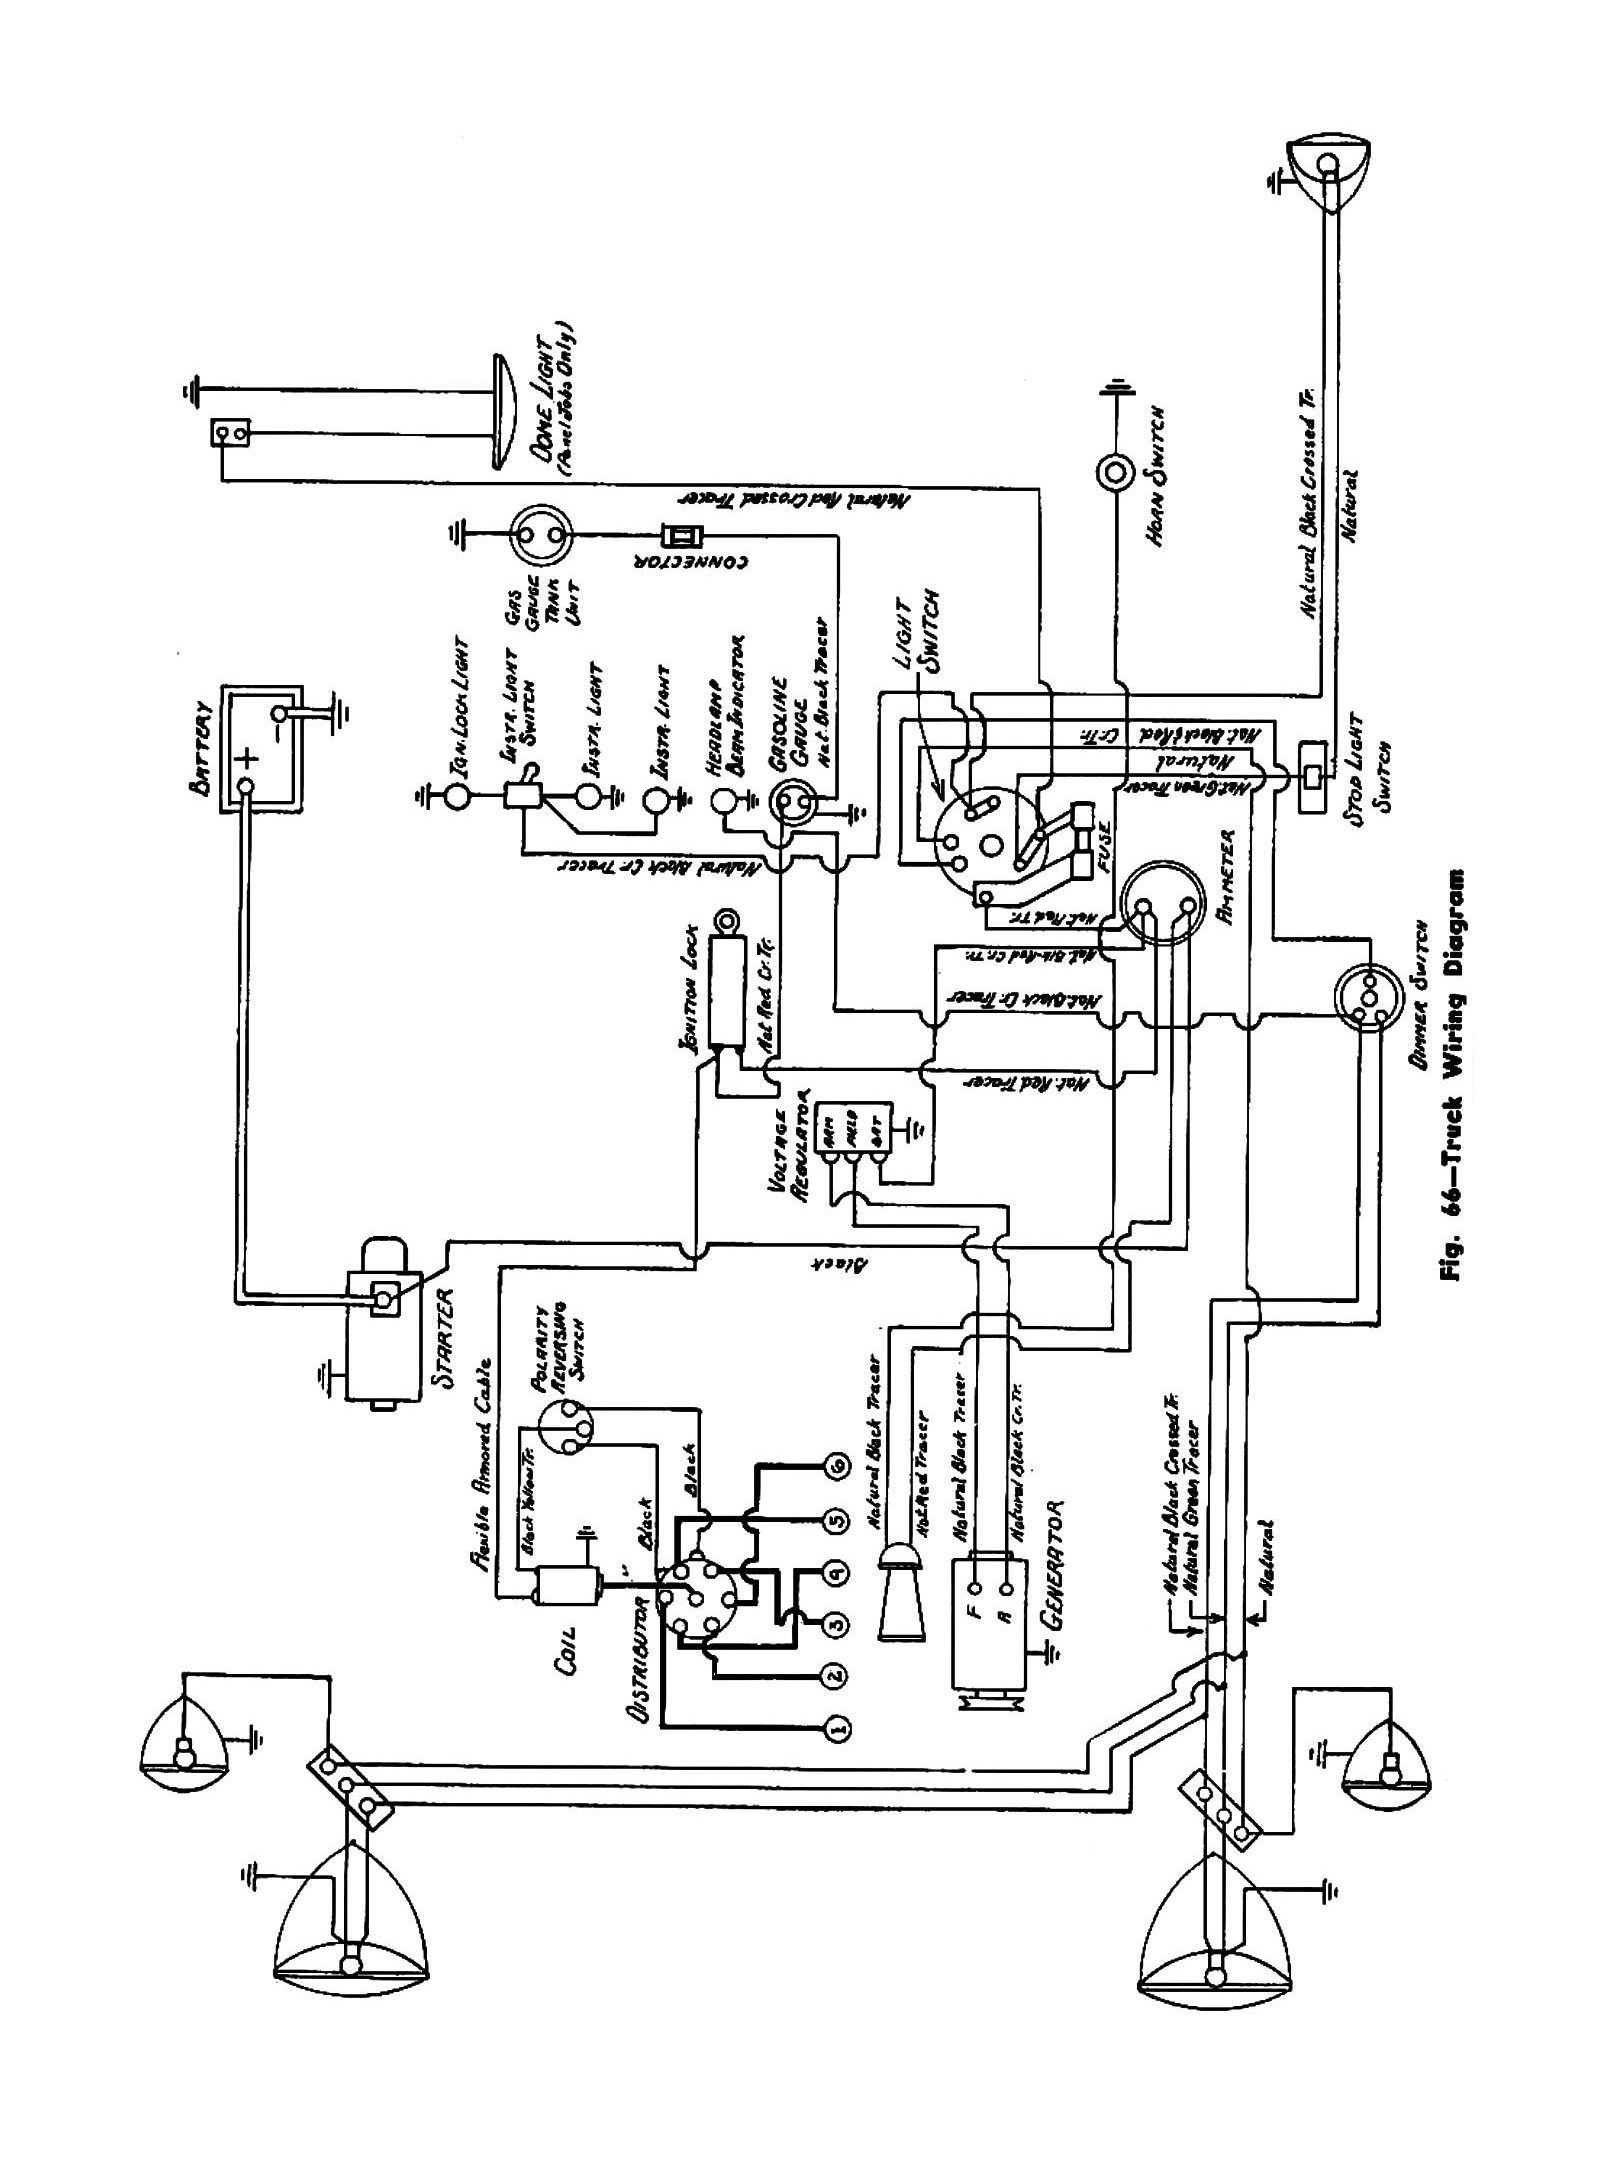 hight resolution of chevrolet wiring harness wiring diagram repair guides gm wiring diagrams free download 1955 chevrolet wiring harness